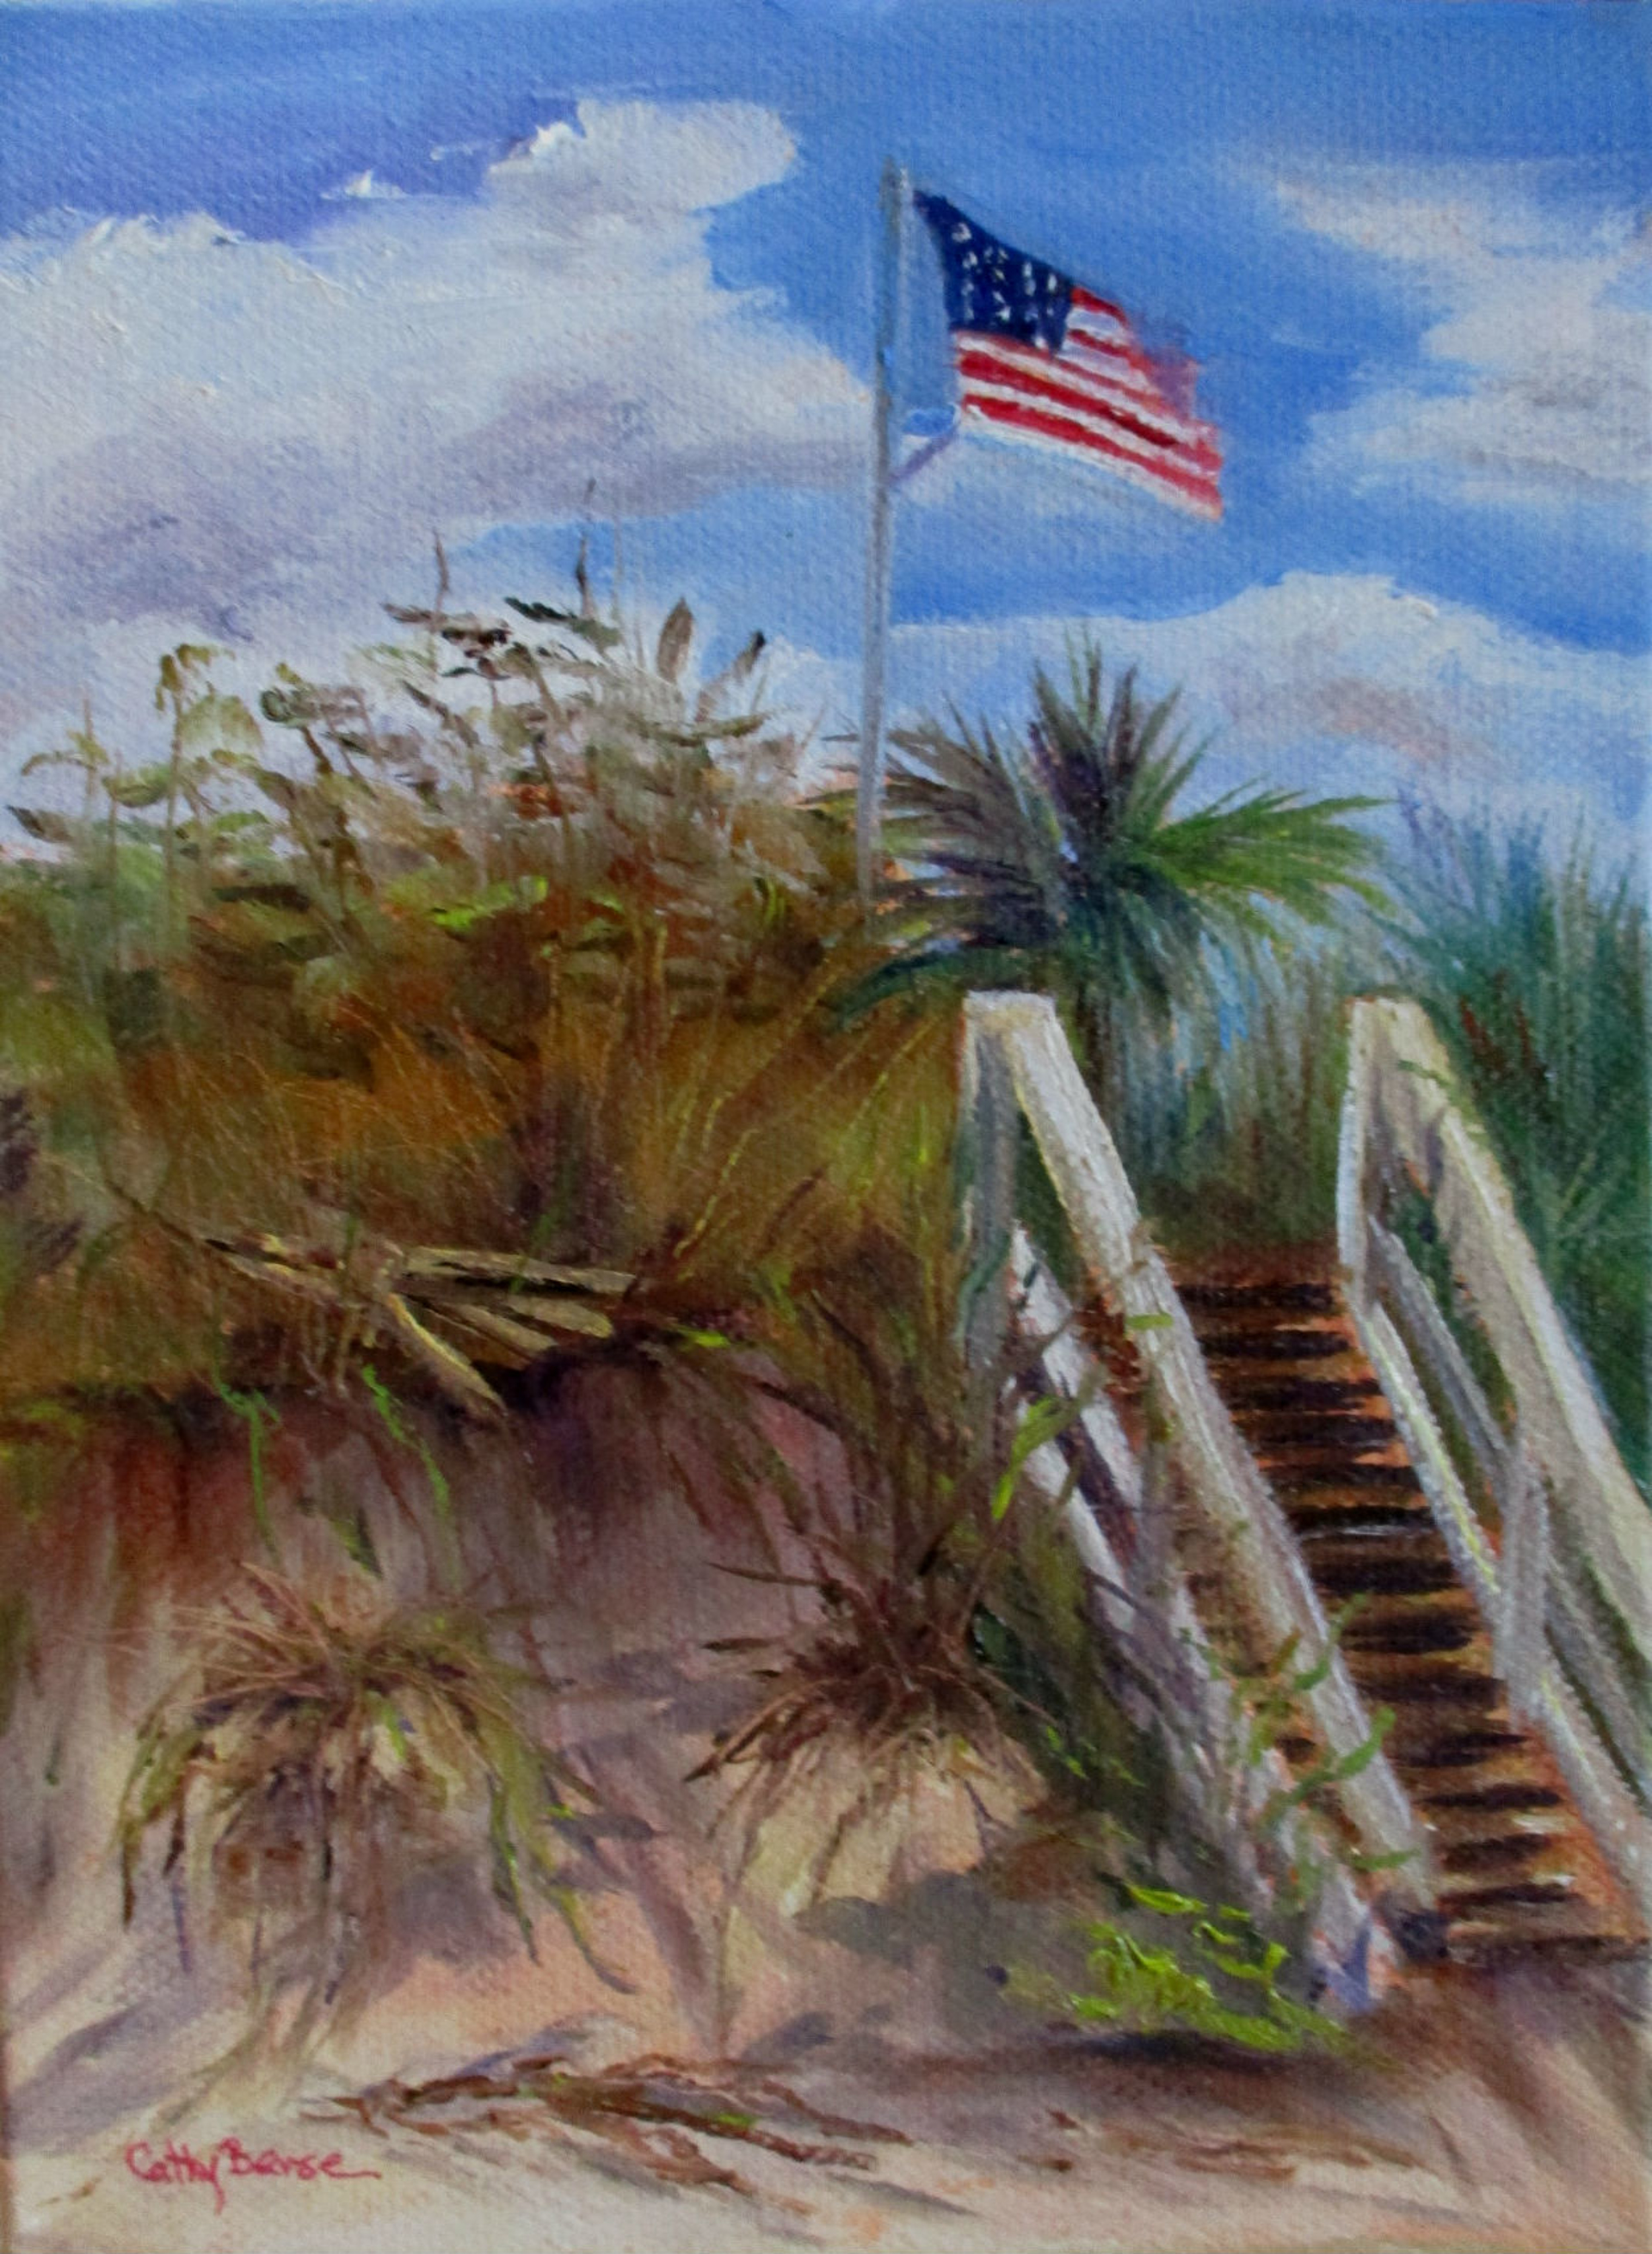 America A Beautiful Day by Cathy Berse